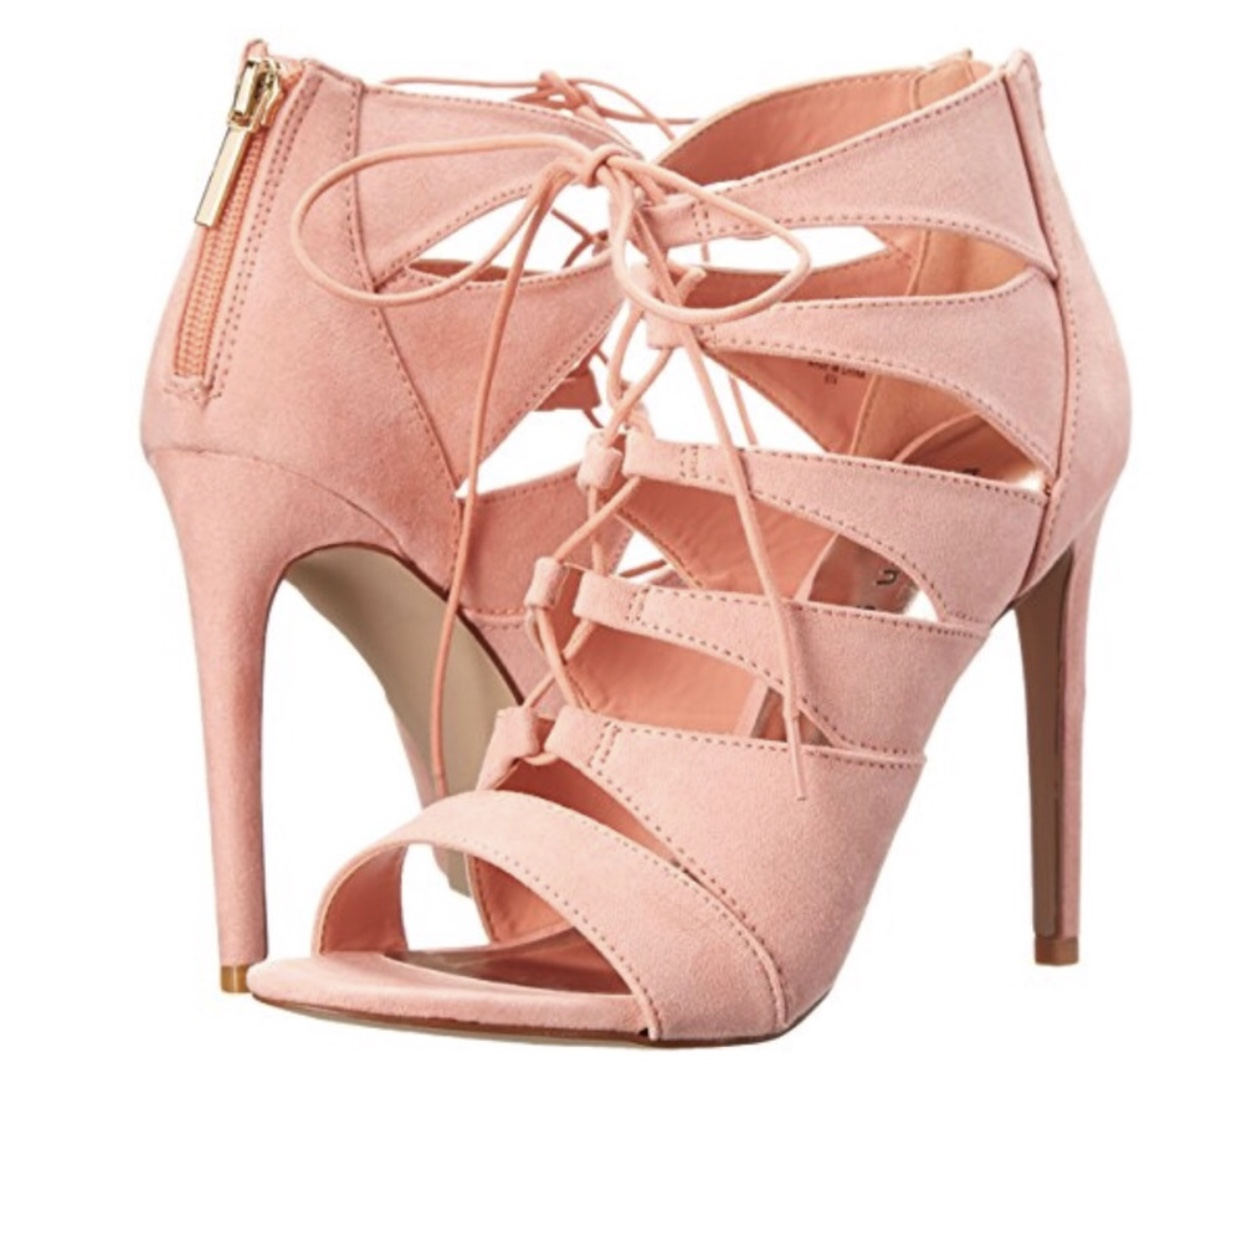 Madden girl Raceyyy laceup heels in a